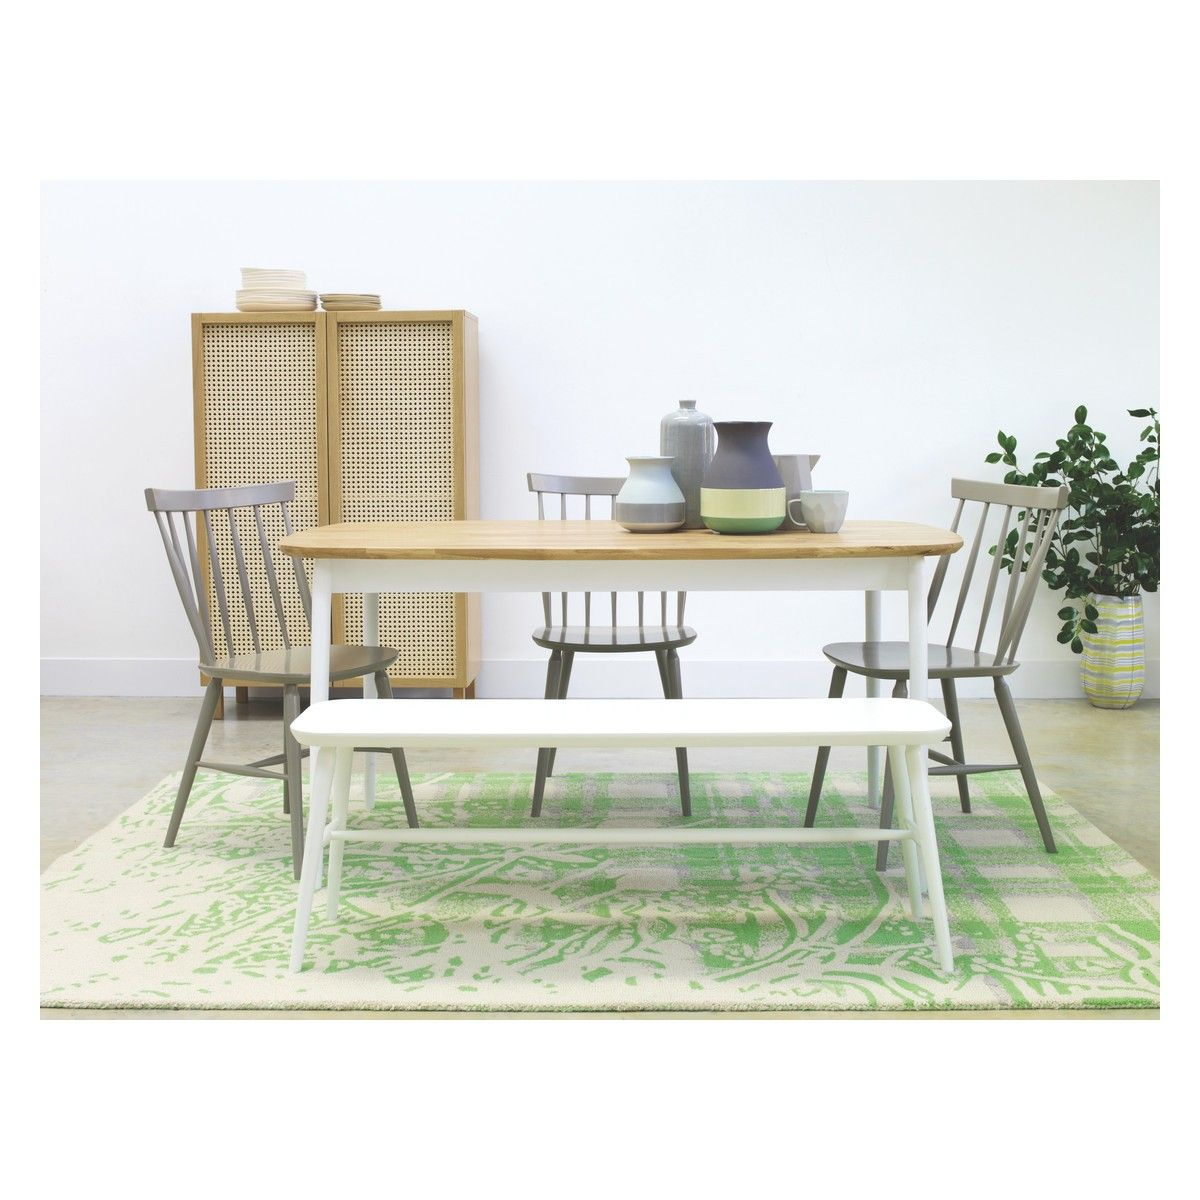 Oak Dining Table TALIA White Bench